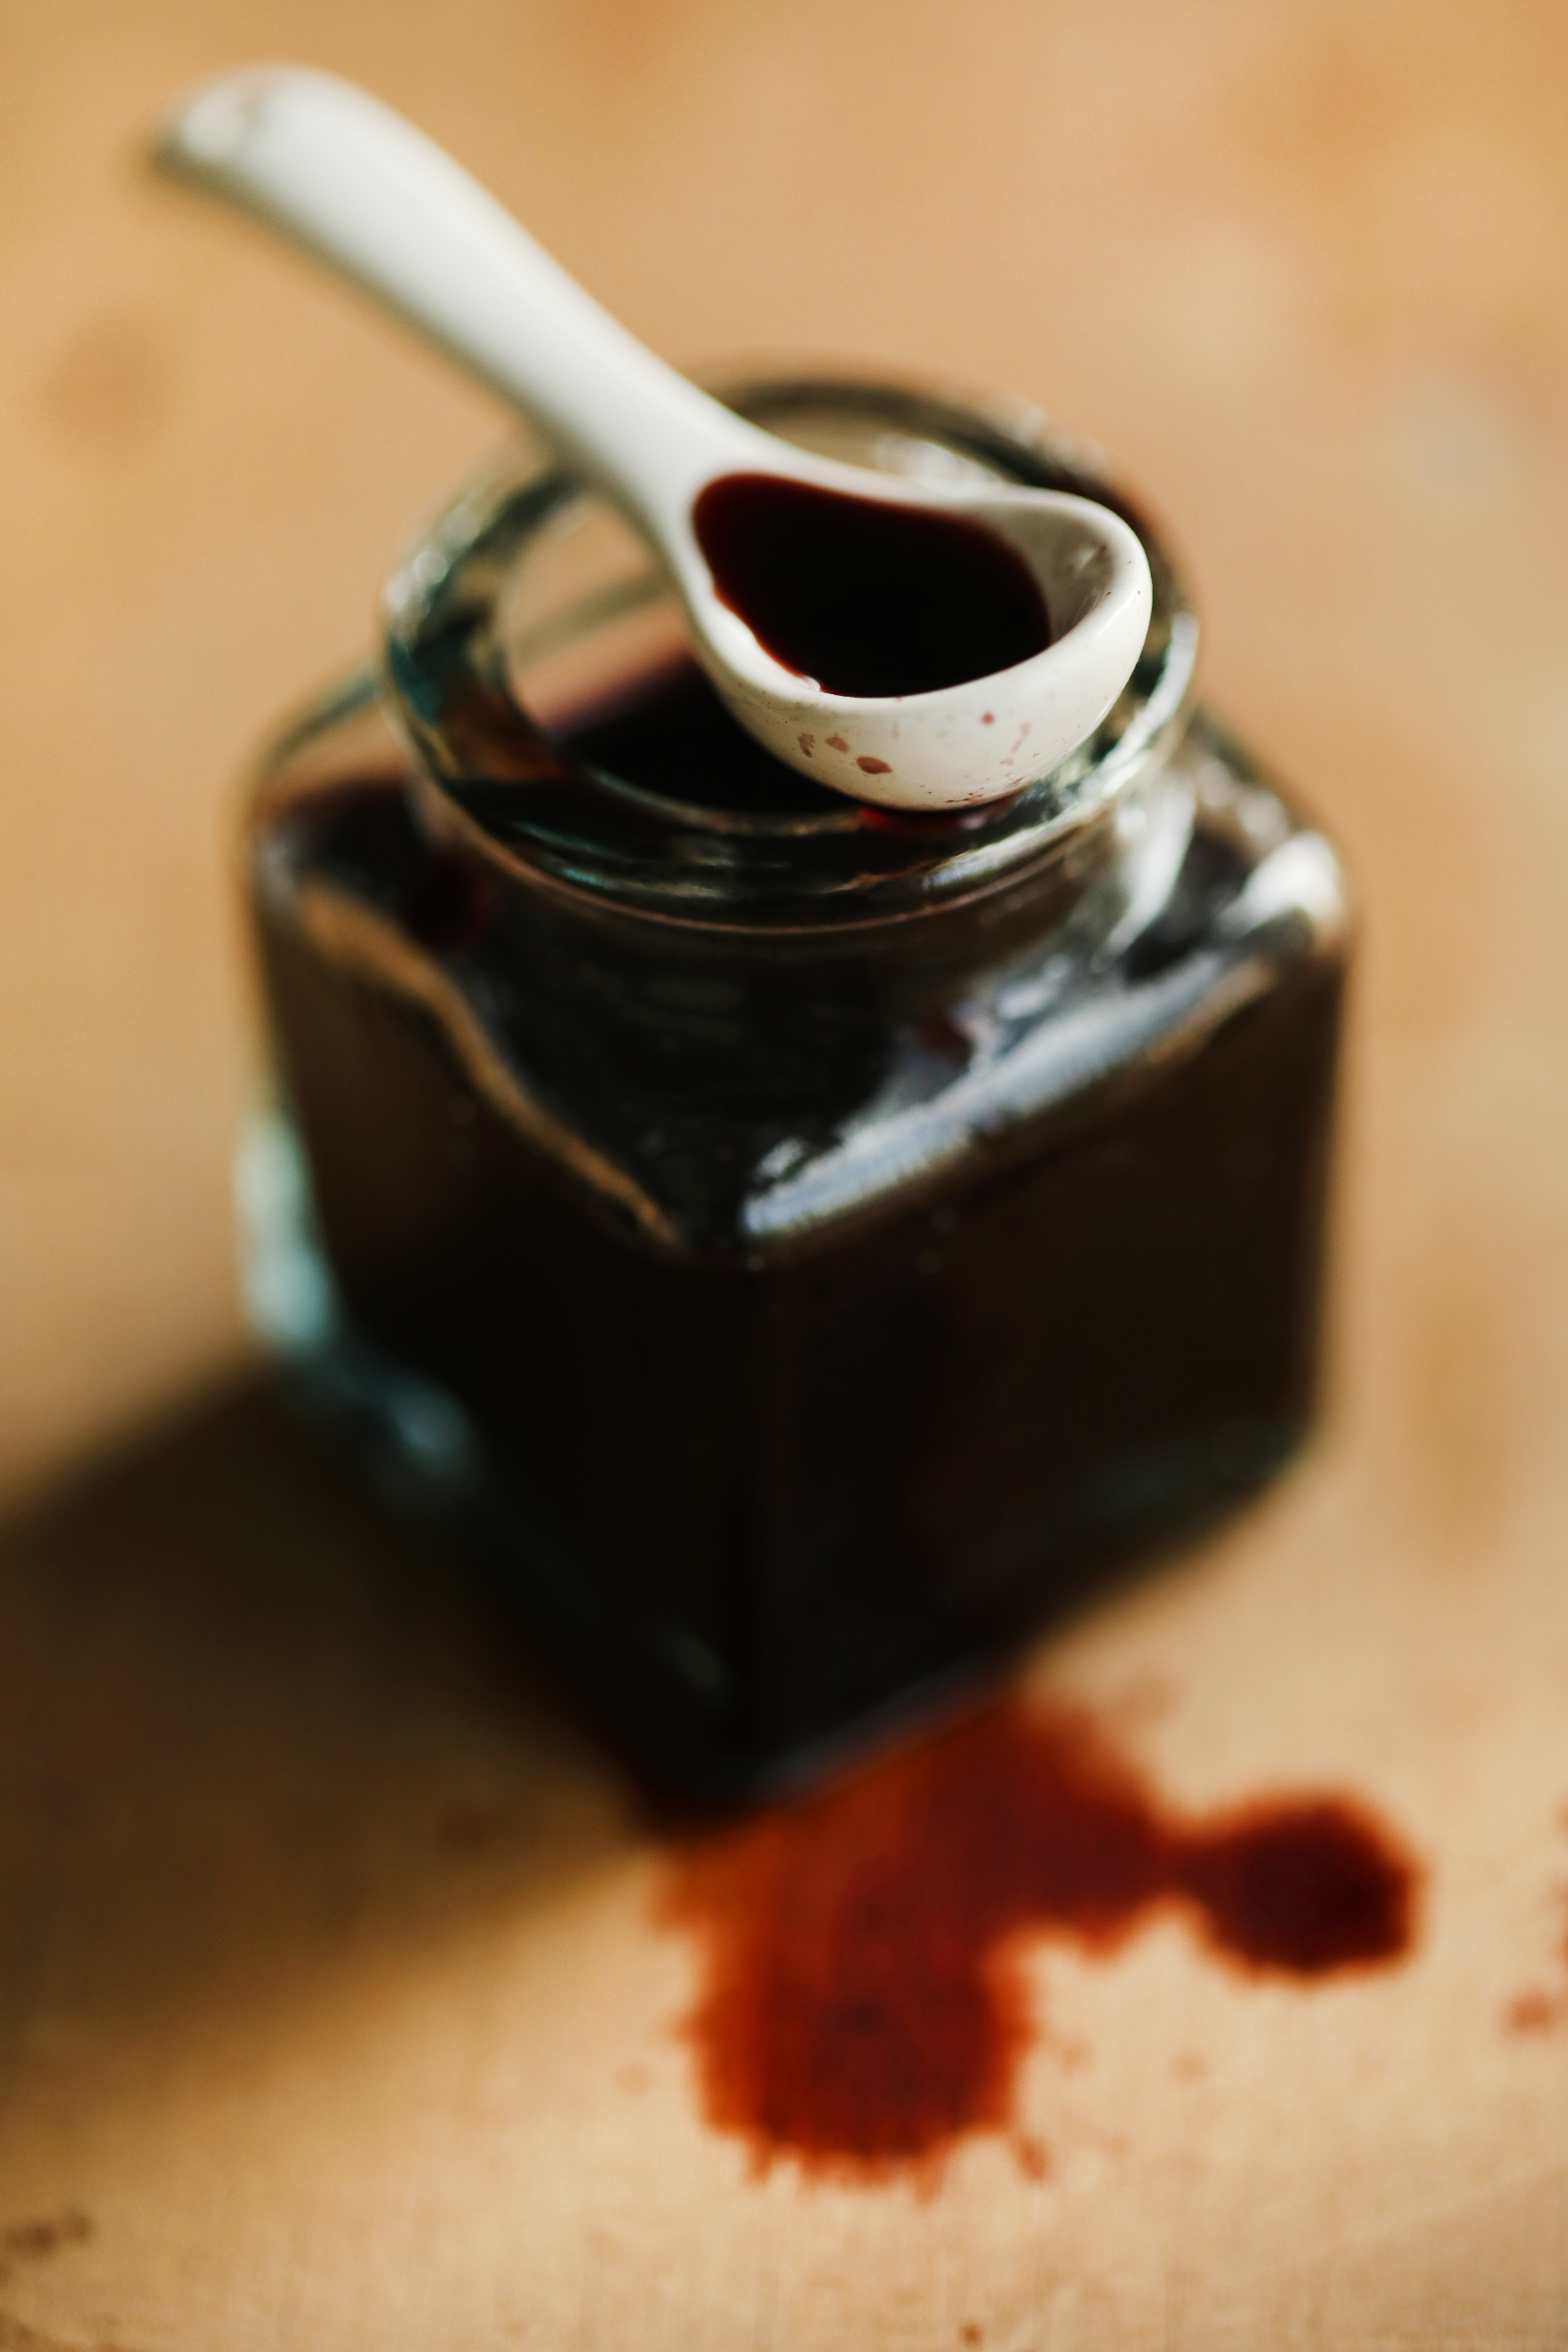 A white spoon full of dark, elderberry vinegar rests on the mouth of a clear jar full of dark, syrupy liquid. Several drops of dark red vinegar drips onto a wood surface.